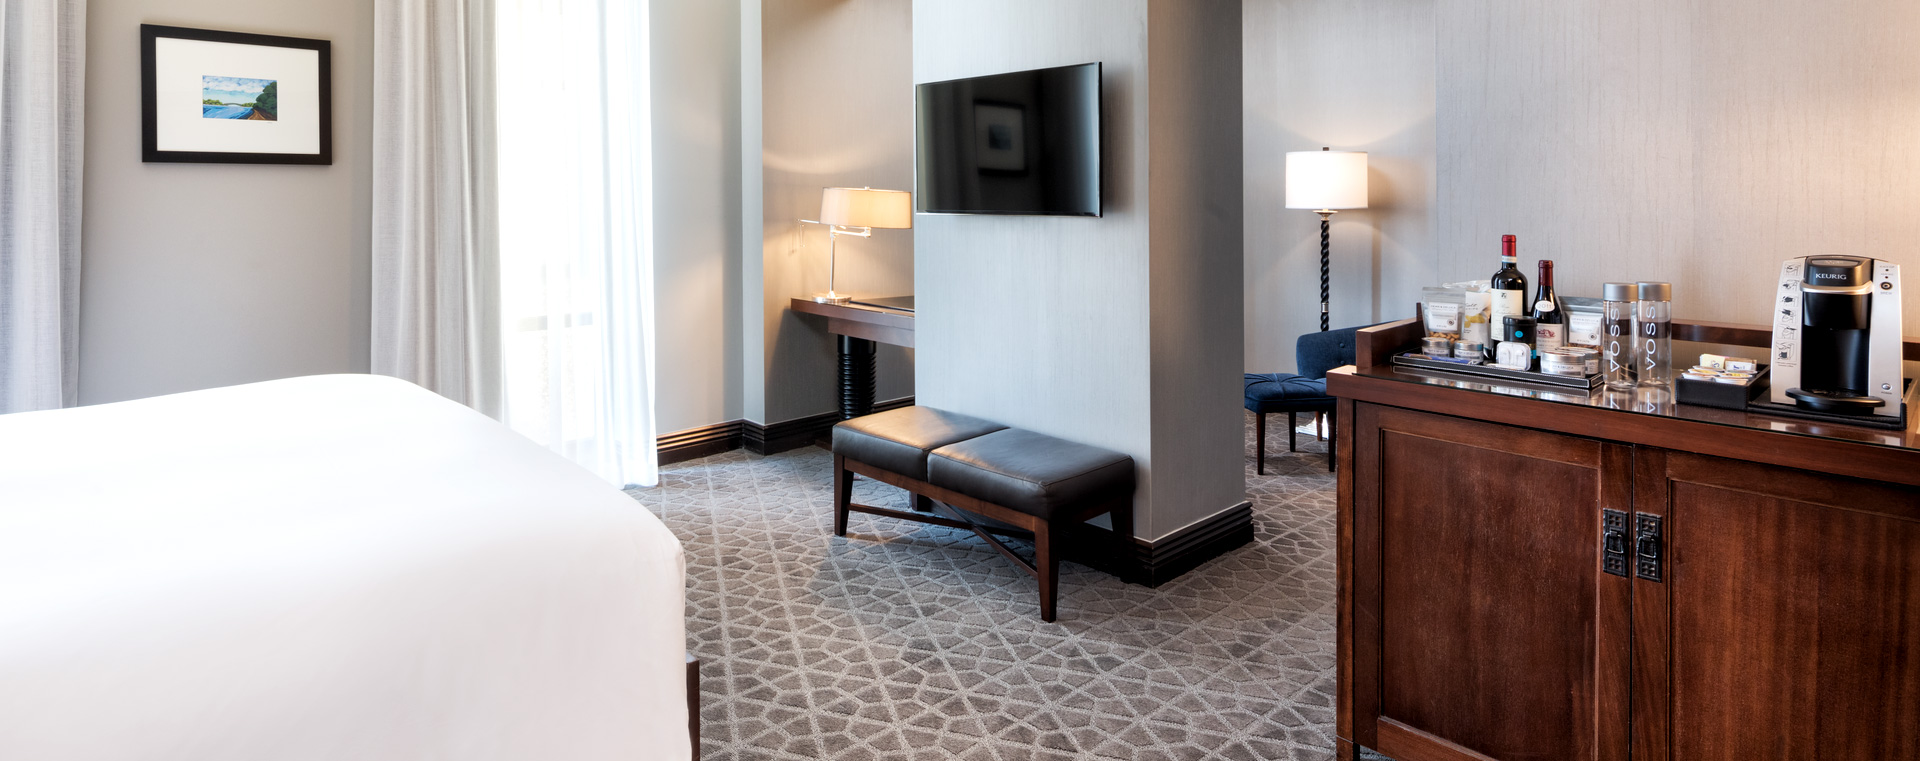 Hotel Ivy, A Luxury Collection Hotel, Minneapolis Executive King